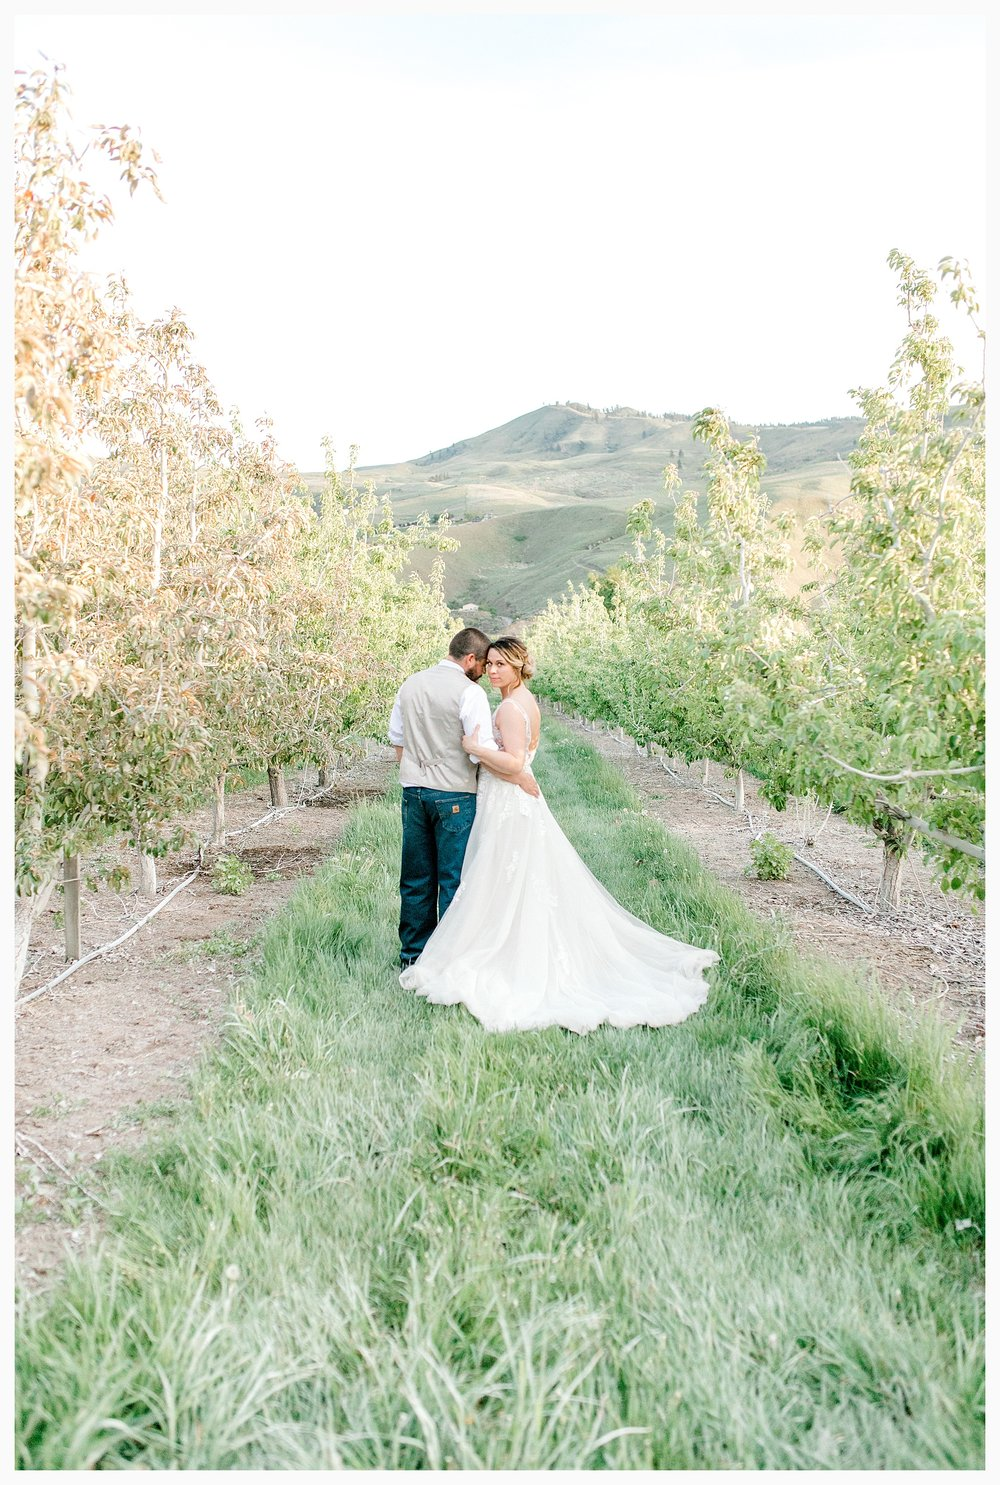 Rustic barn wedding in Wenatchee Washington at Sunshine Ranch on Easy Street, Emma Rose Company Seattle PNW Light and Airy Wedding Photographer_0136.jpg